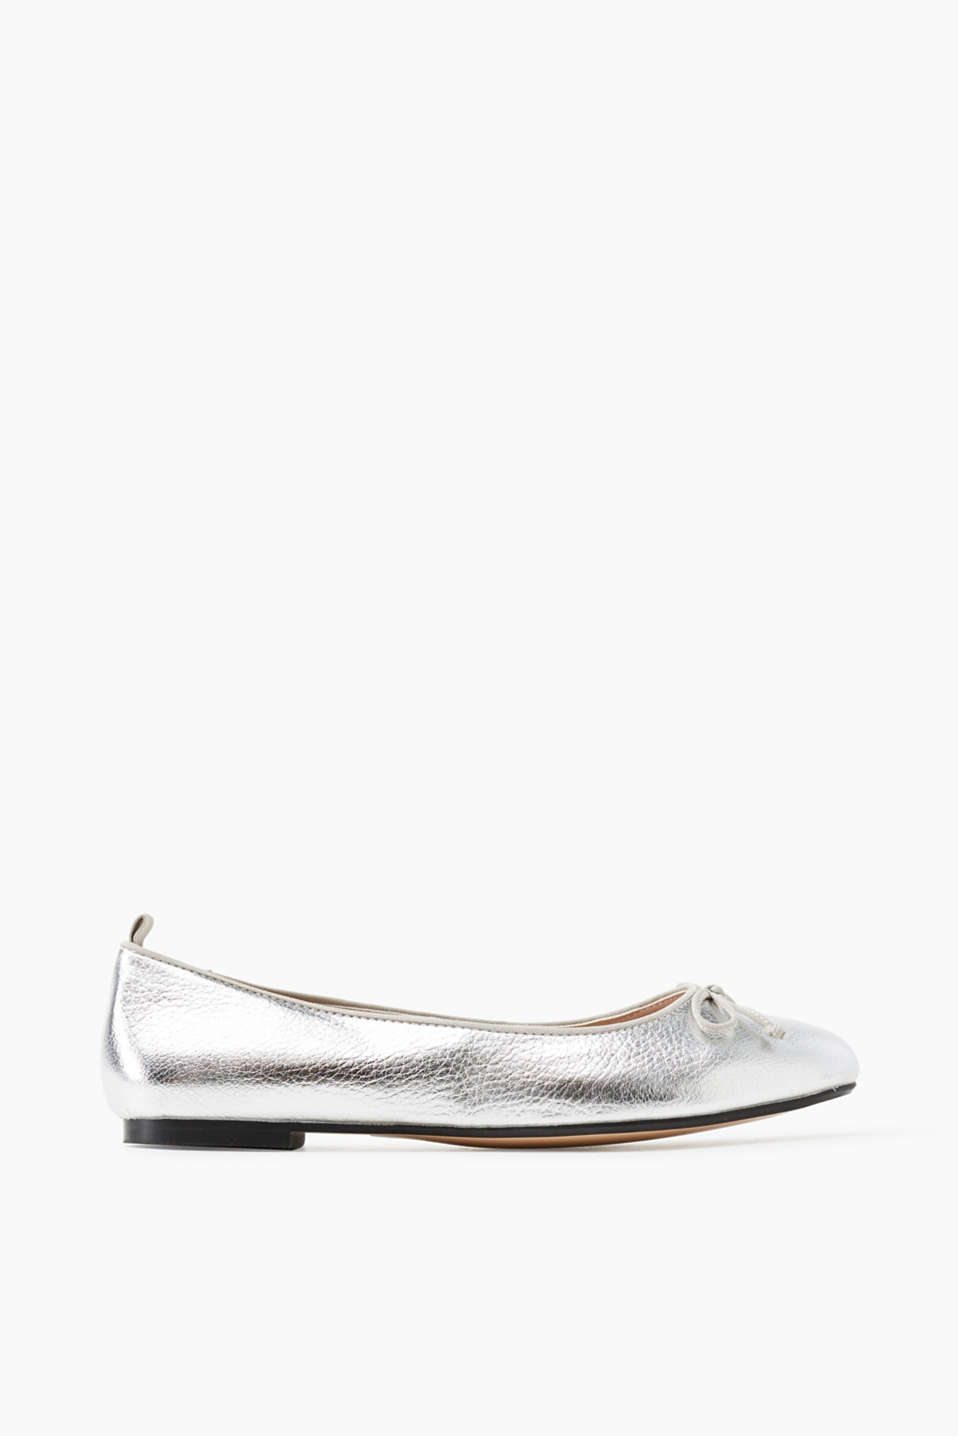 With a rounded toe and a decorative bow: faux leather ballerinas